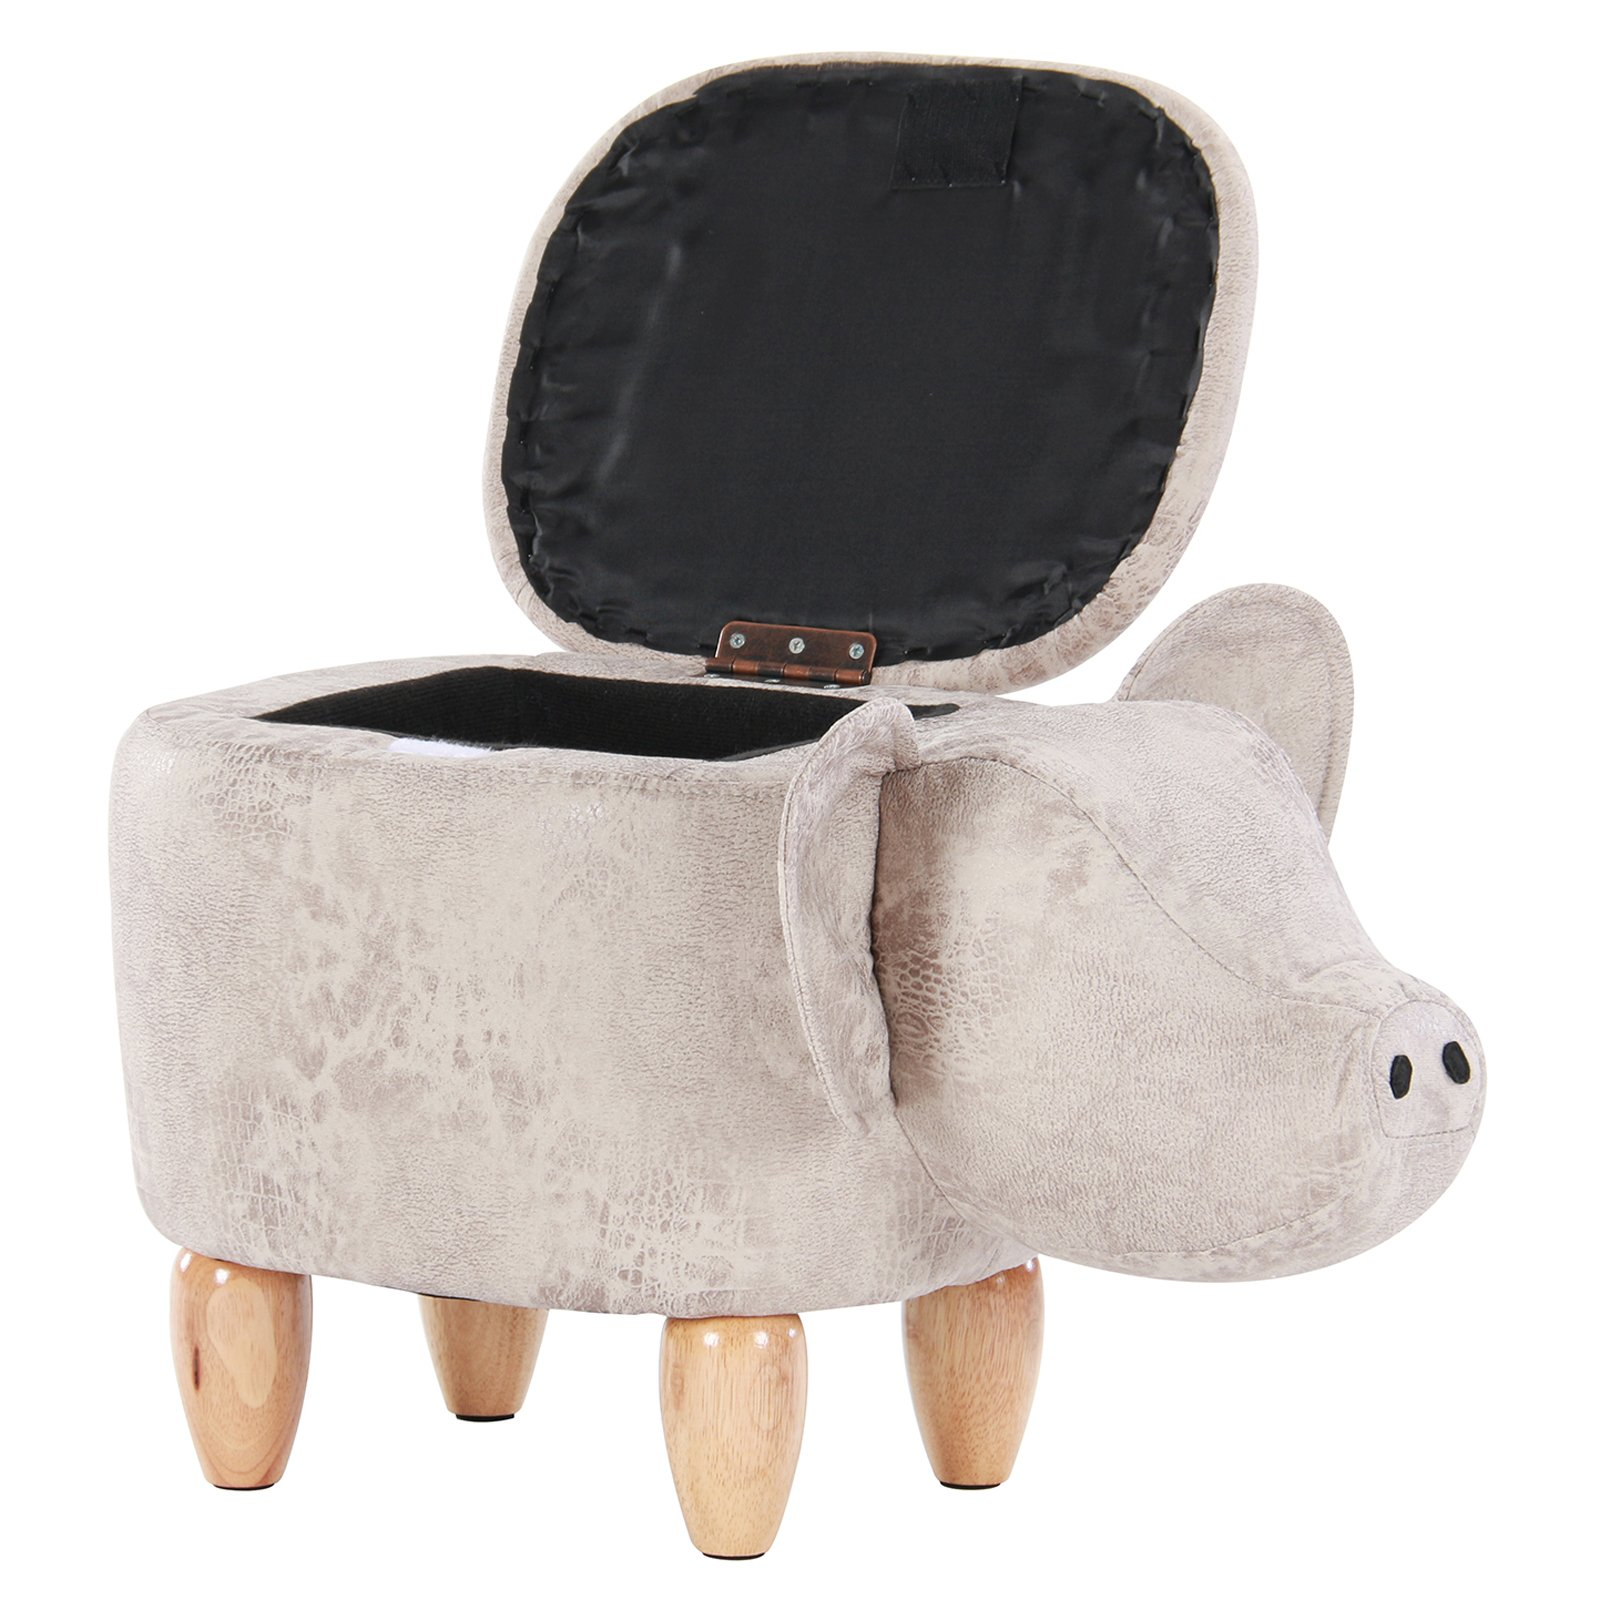 Artechworks Pig Shaped Animal Storage Ottoman Footrest Stool, Gray